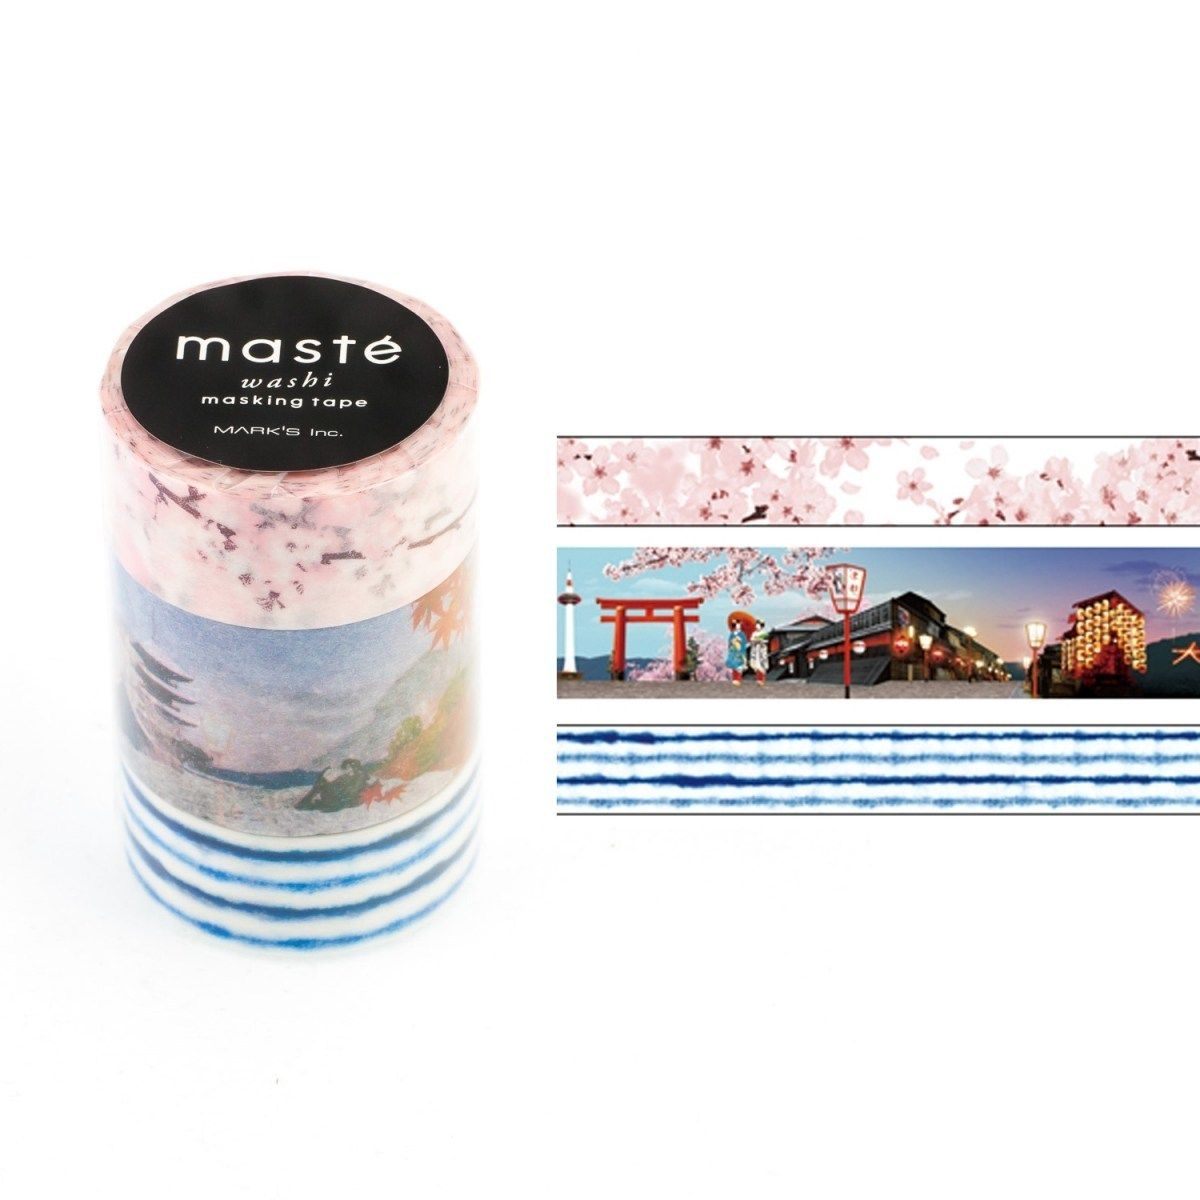 WASHI TAPE MASTÉ JAPAN 2.2 KIT C/ 3